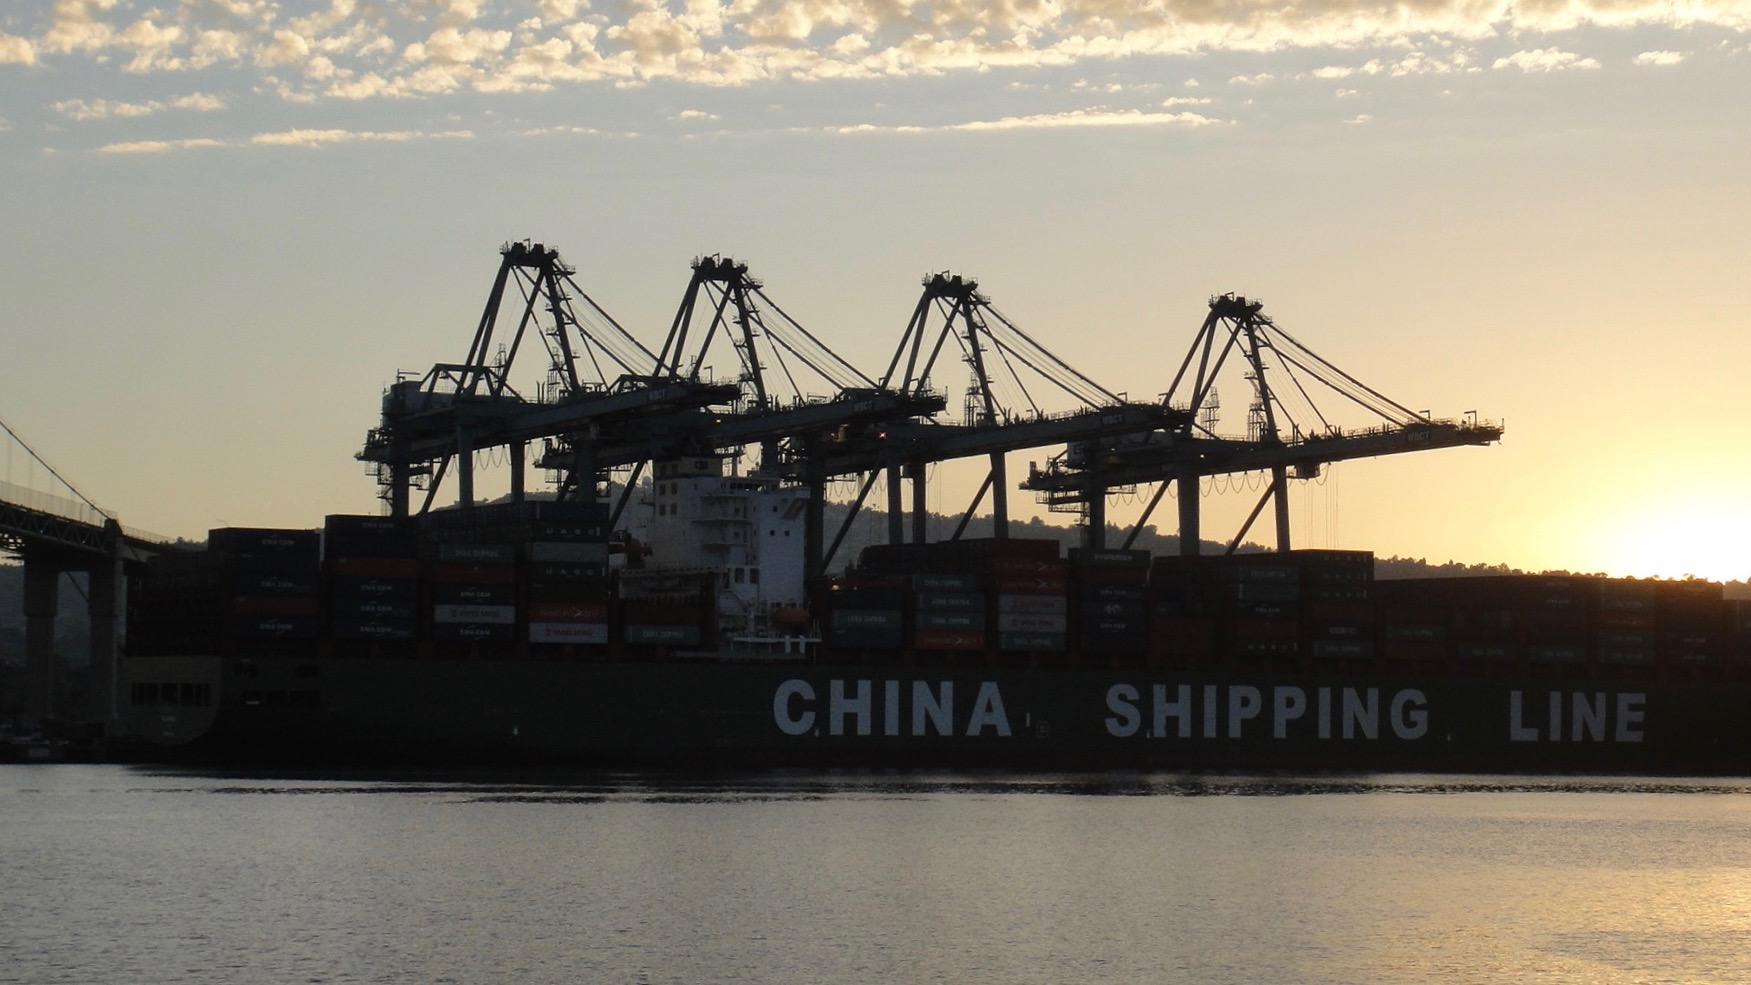 China Shipping at the Port of Los Angeles